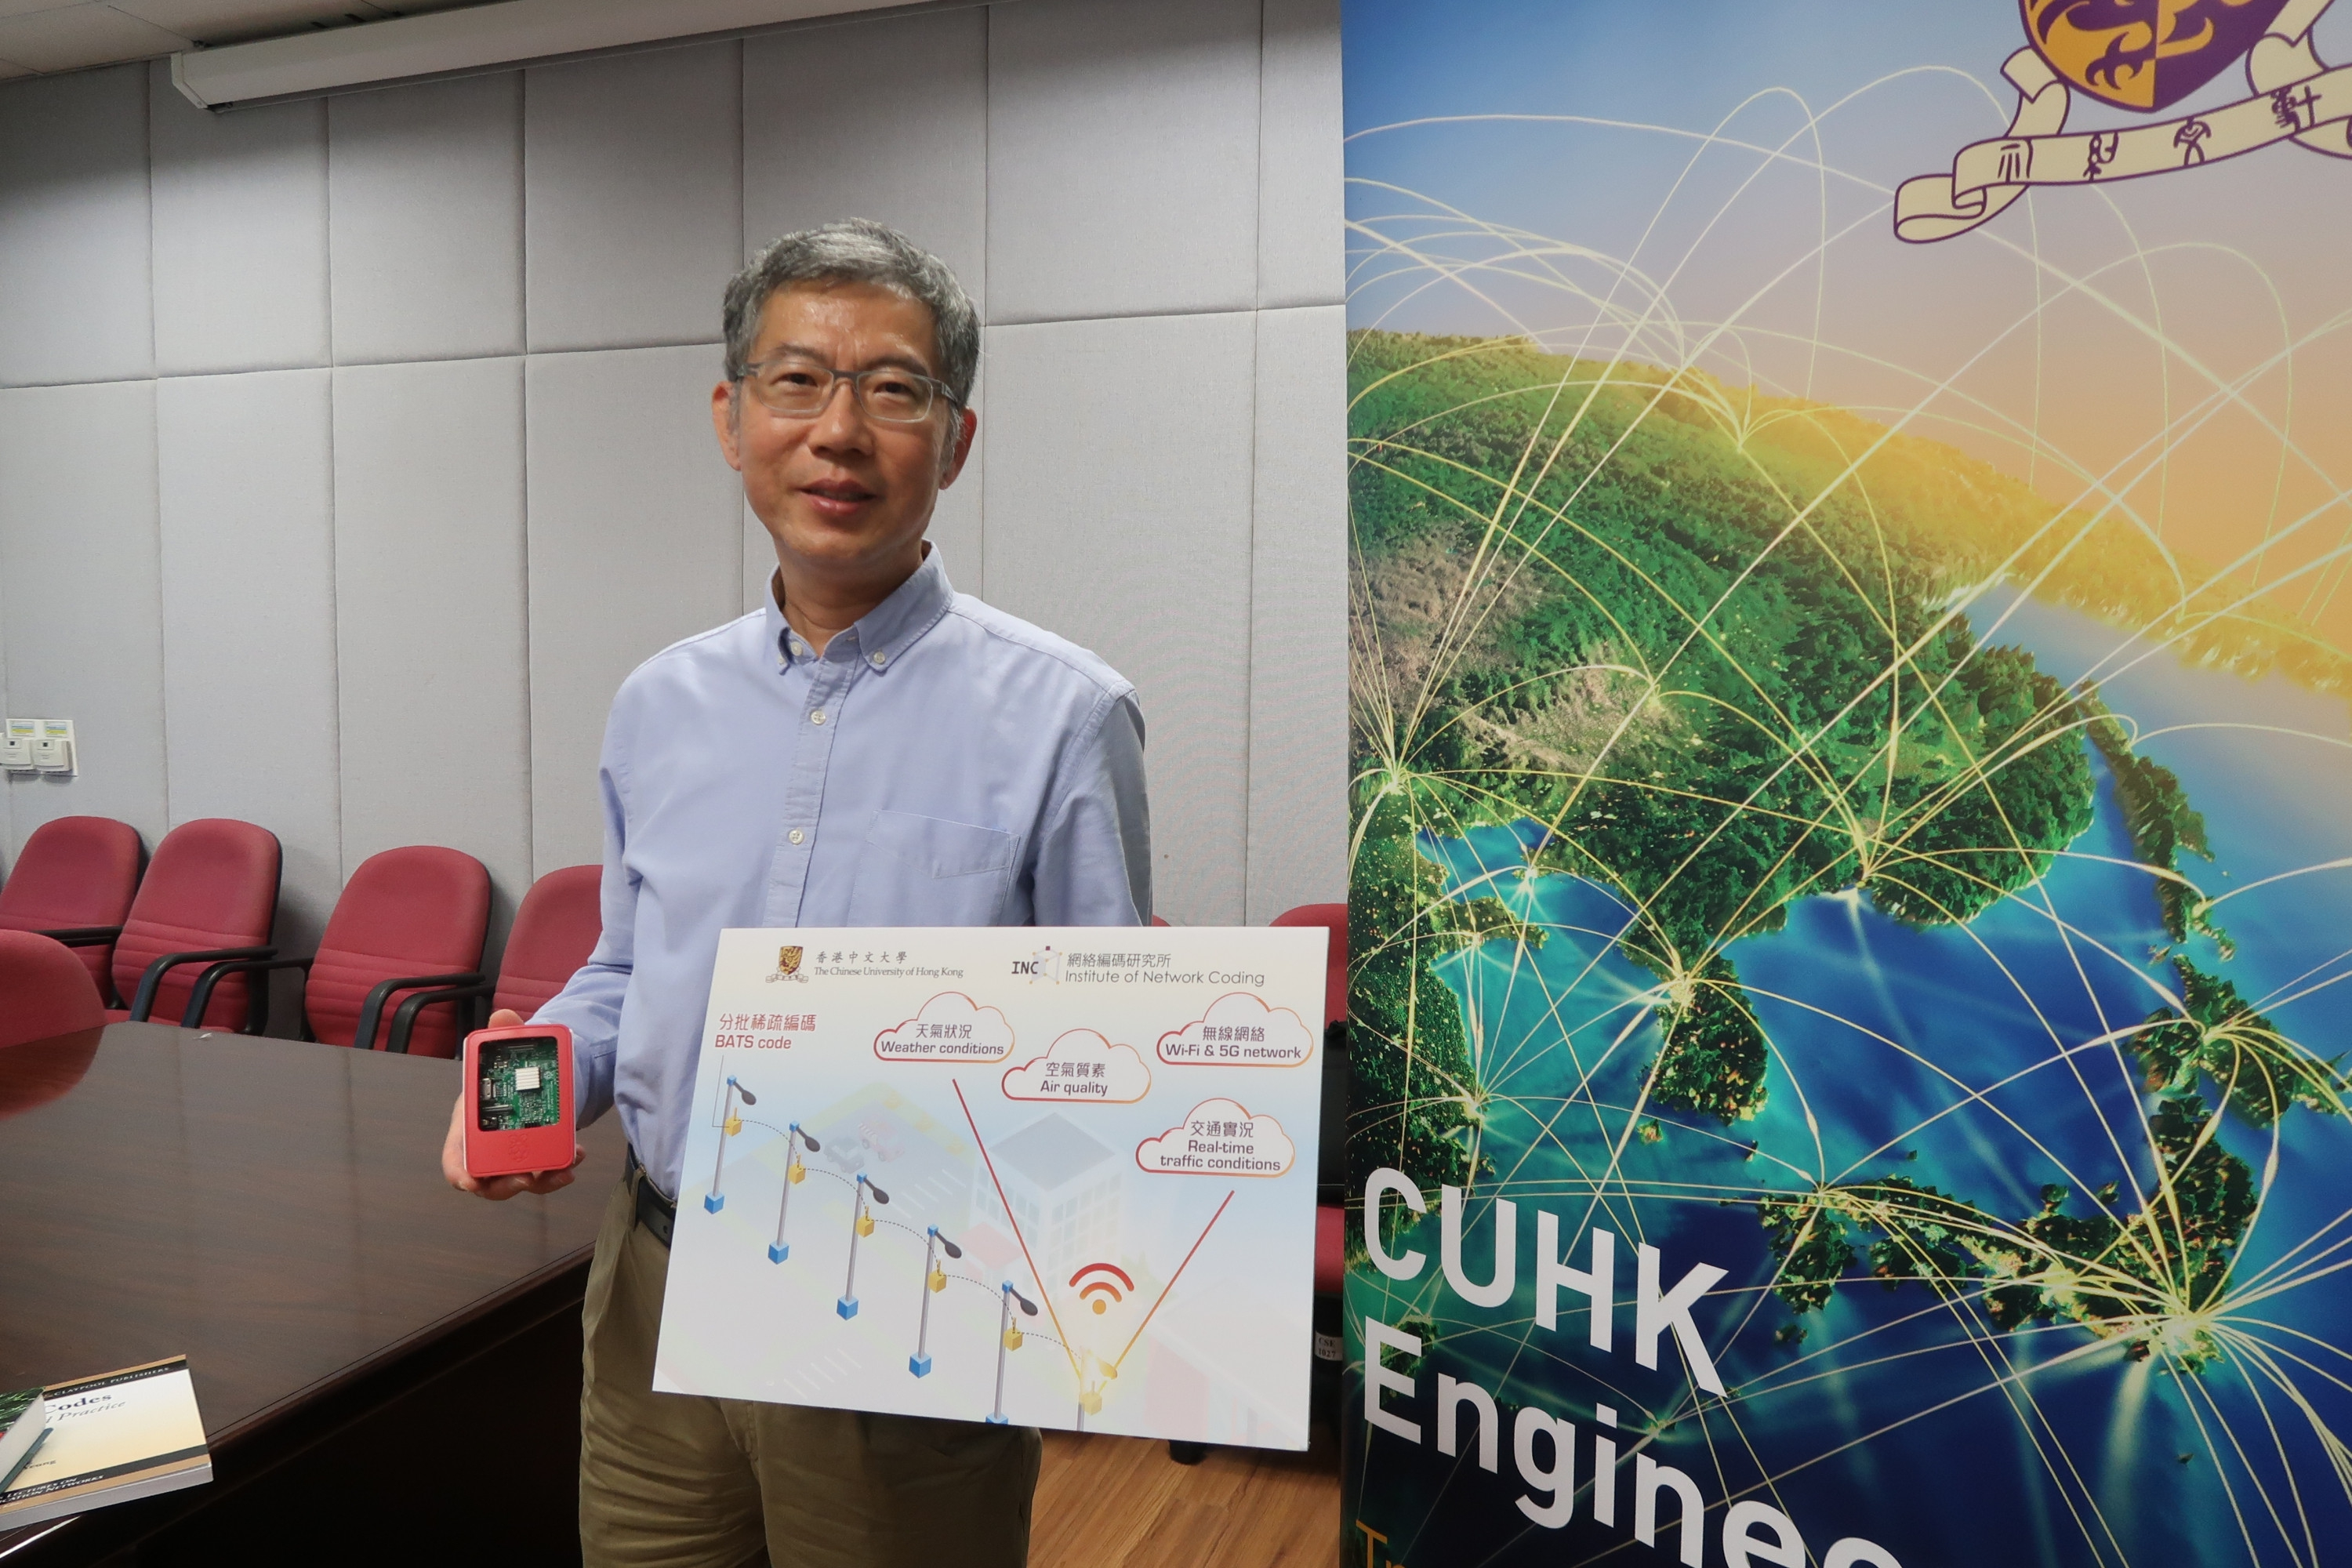 The BATS: Enabling the Nervous System of Smart Cities project led by Prof. Raymond Yeung, from the Institute of Network Coding of CUHK, receives the Gold Medal with Congratulations of the Jury